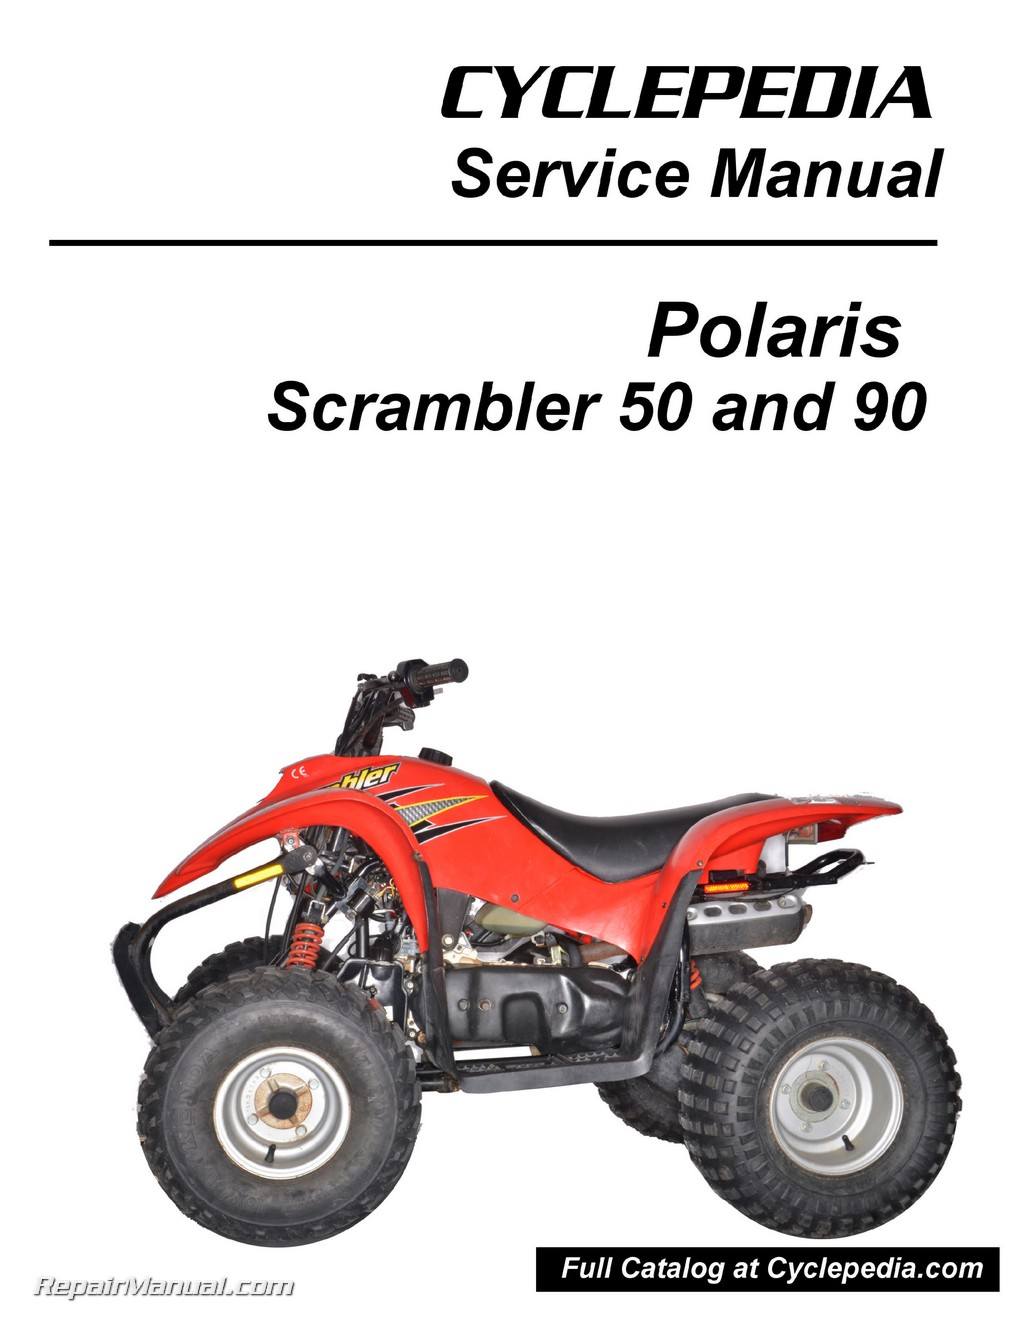 hight resolution of polaris 50cc 90cc scrambler atv print service manual by cyclepediapolaris 50cc 90cc scrambler atv print service